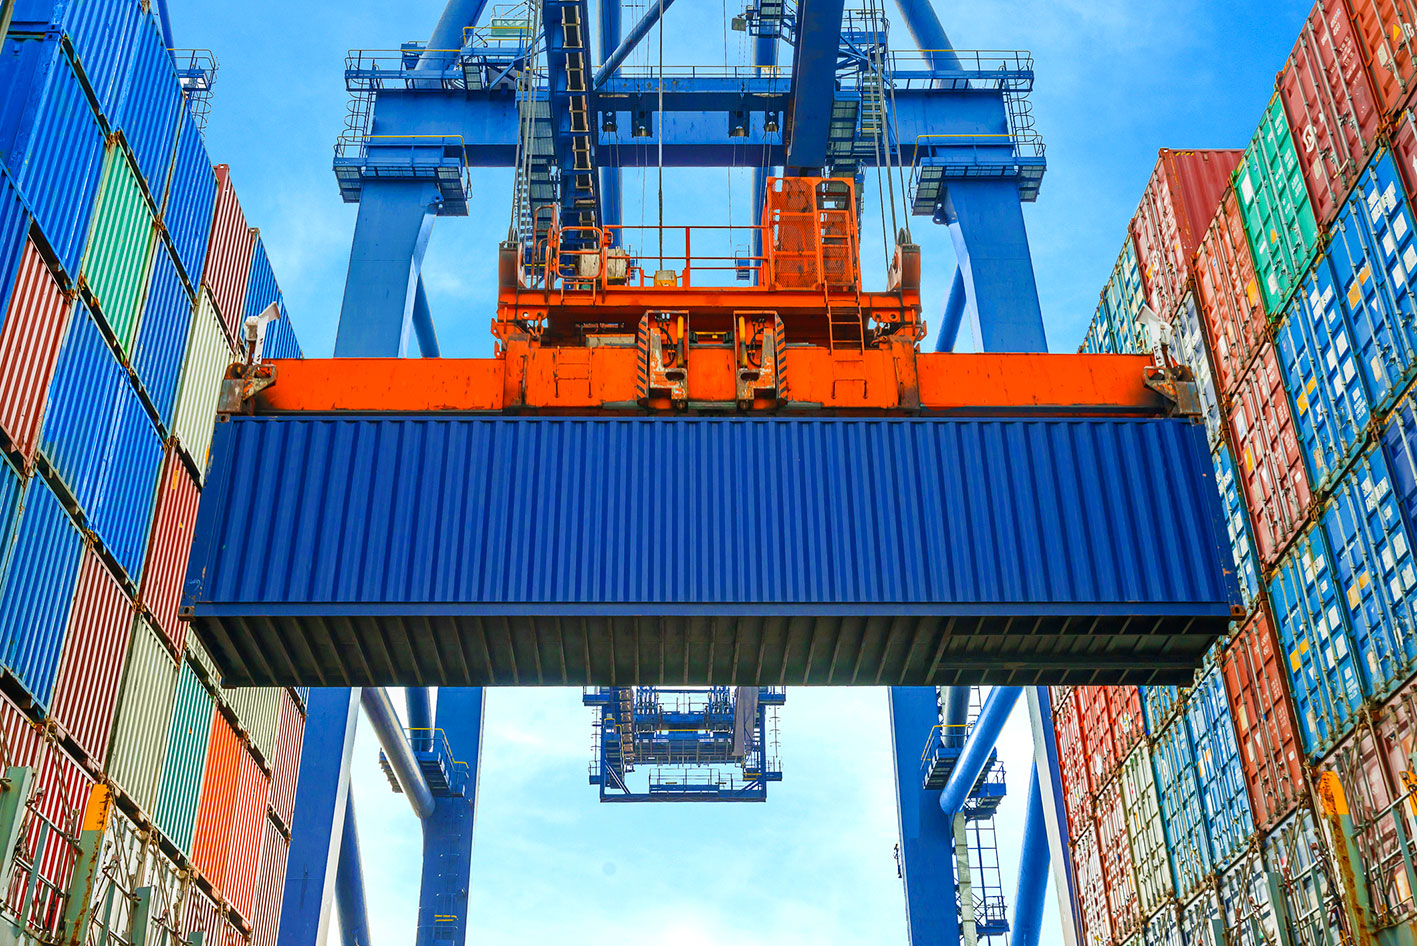 Crane-loading-containers-in-freight-ship